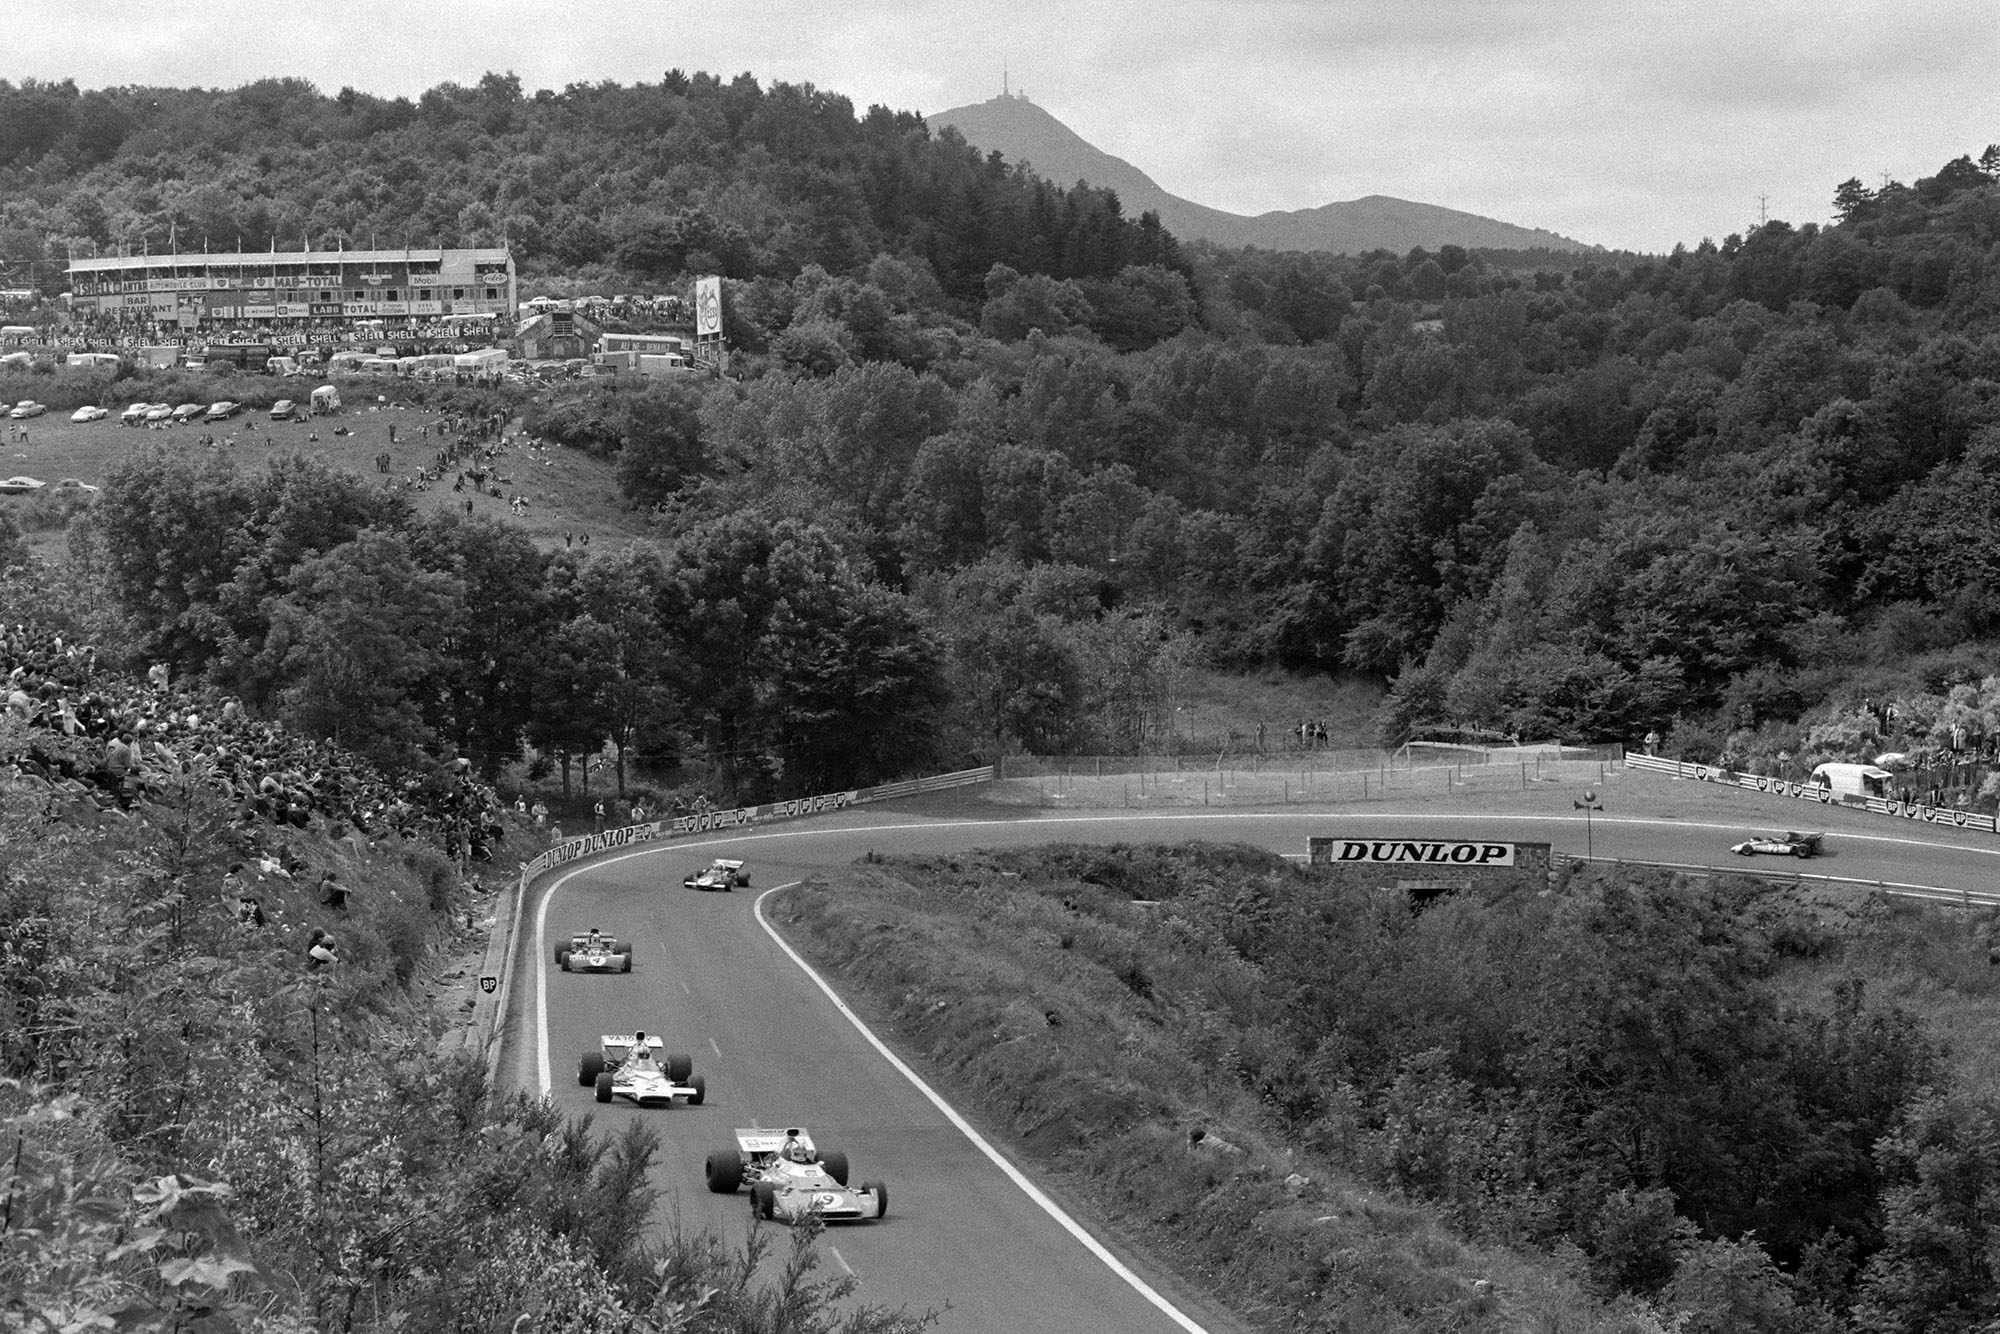 The cars thread their way through the mountainous circuit at the 1972 French Grand Prix.